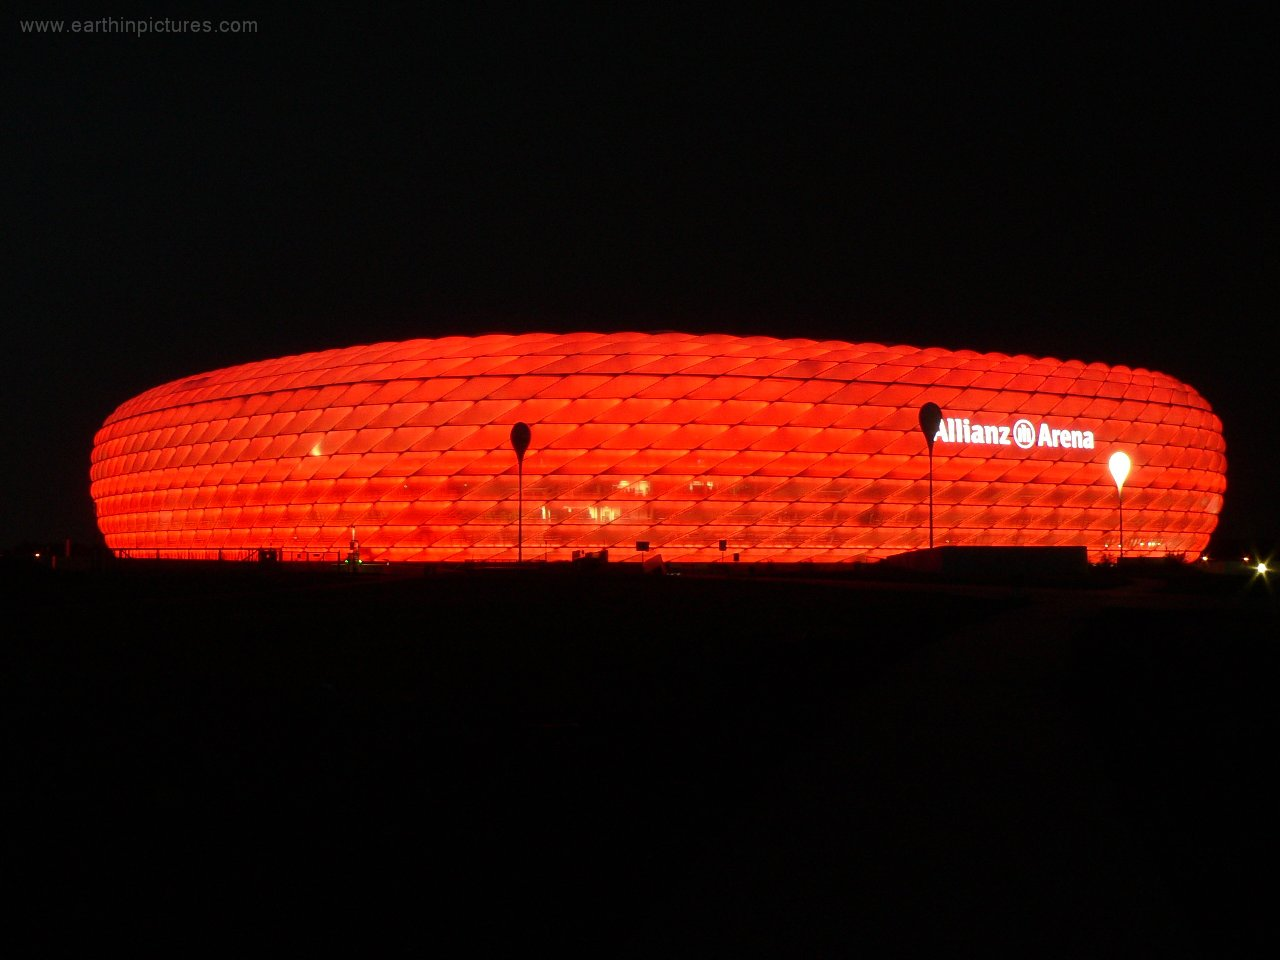 Allianz Arena at night (red) ( 1280x960 )